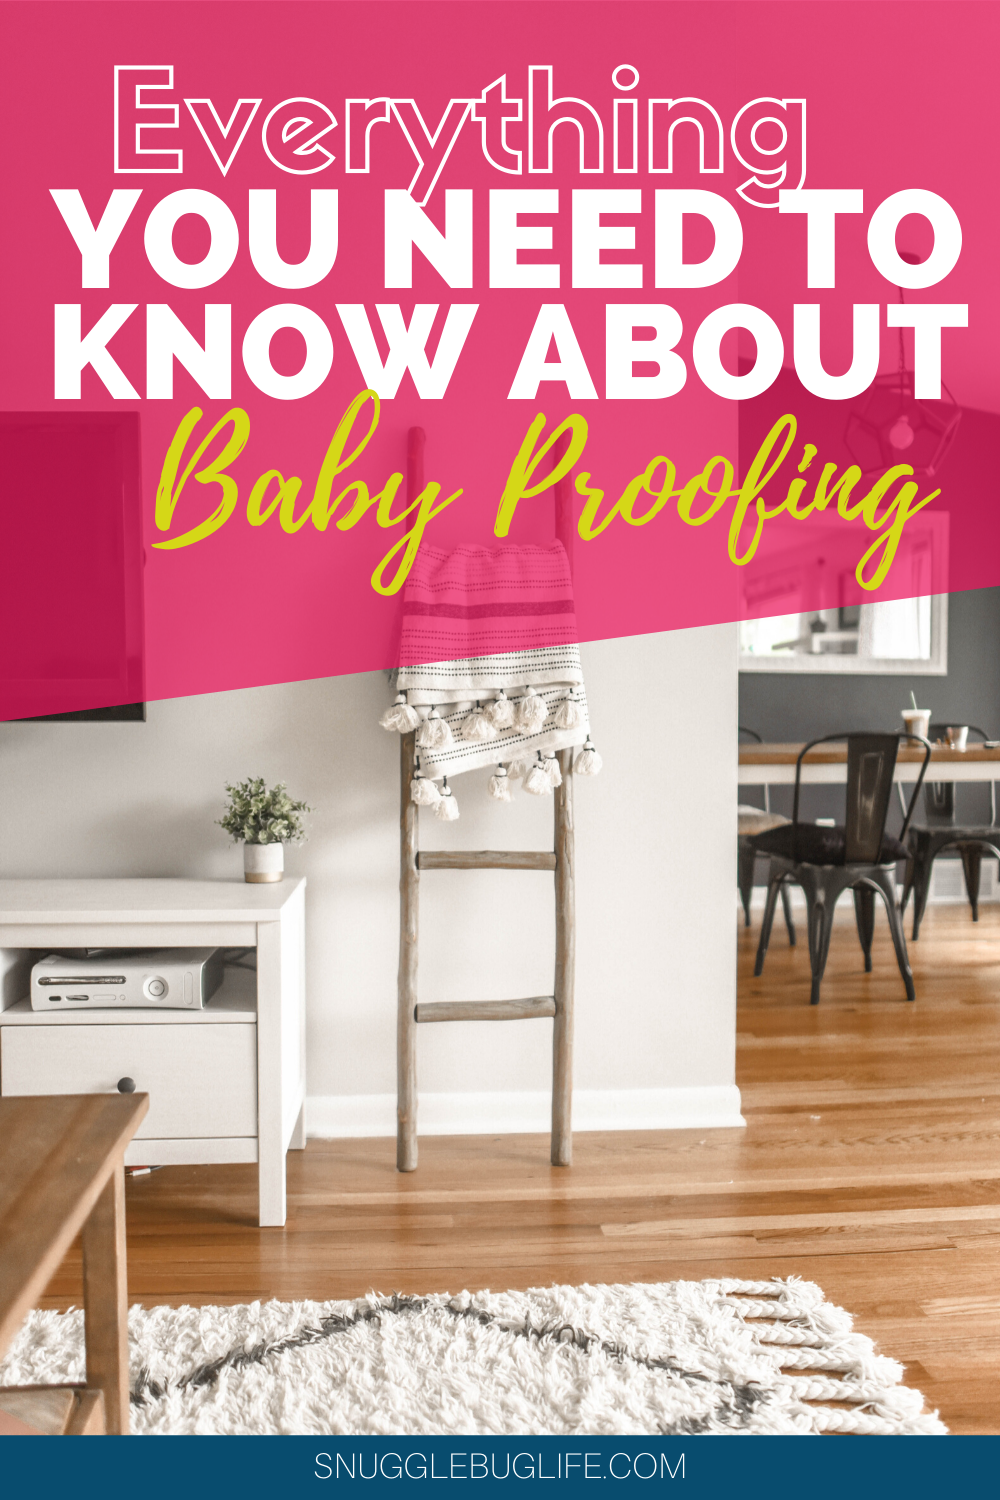 Baby Proofing Checklist And Timeline In 2020 Baby Proofing Preparing For Baby Toddler Milestones